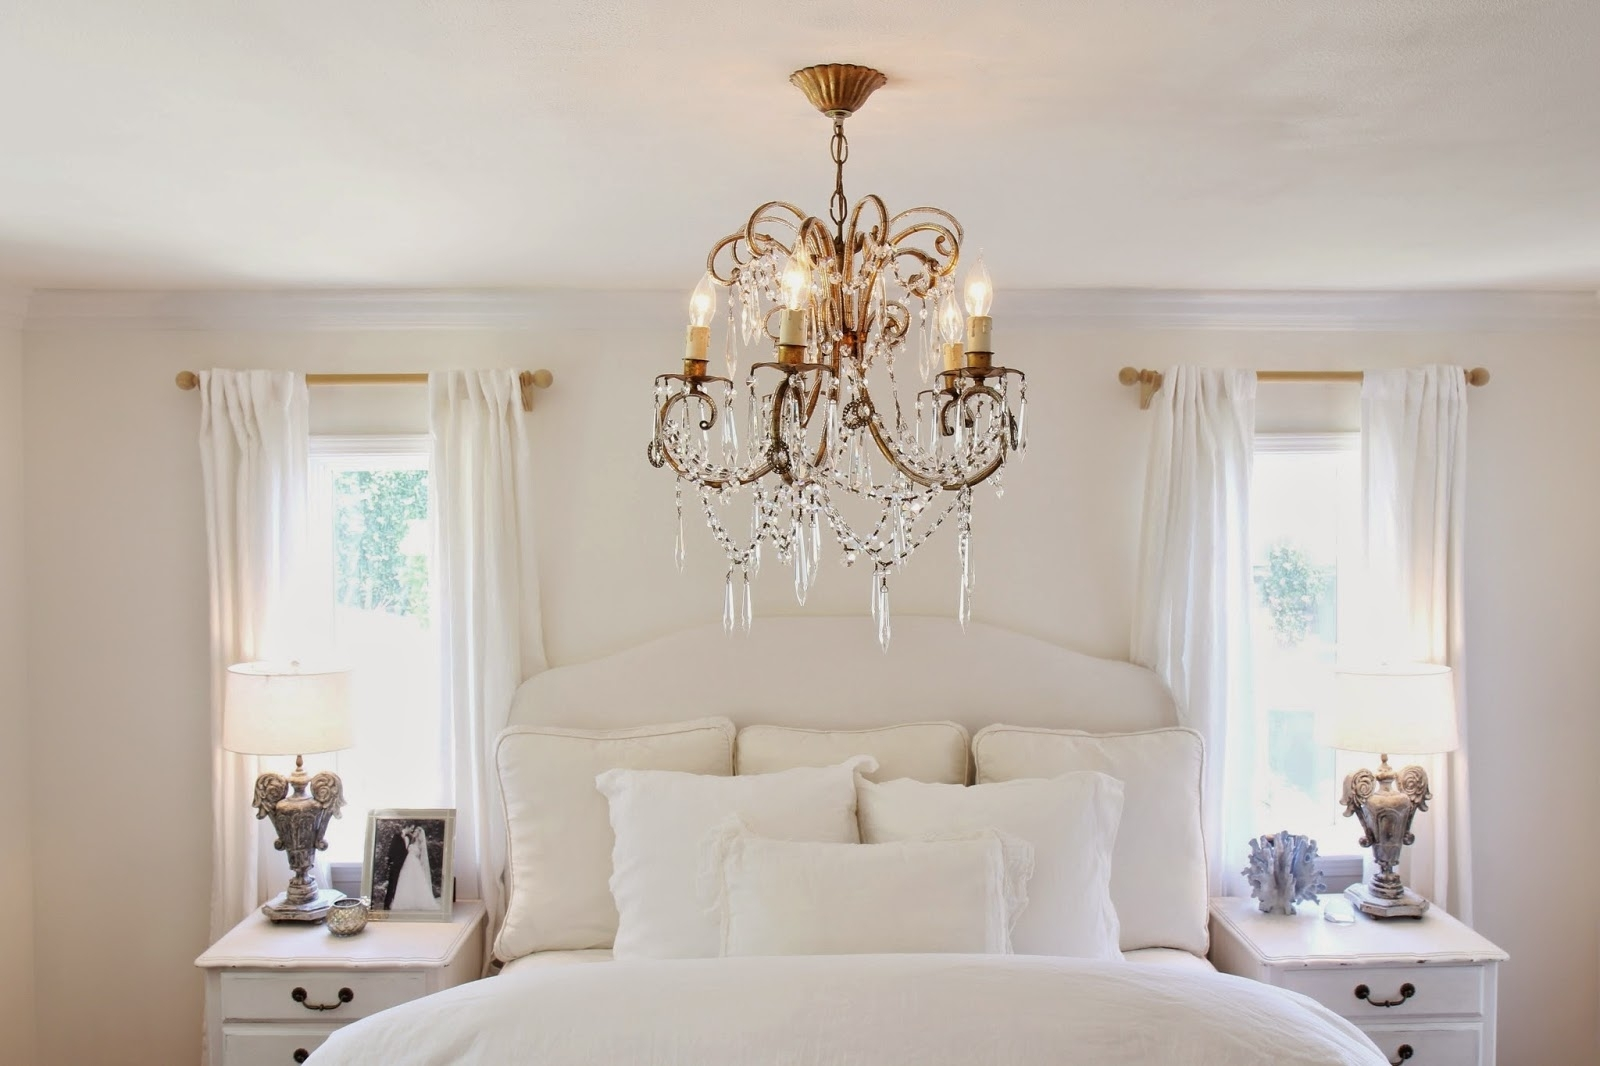 Bedroom Chandeliers With Regard To Trendy Nora's Nest: A Chandelier For The Master Bedroom (View 11 of 20)